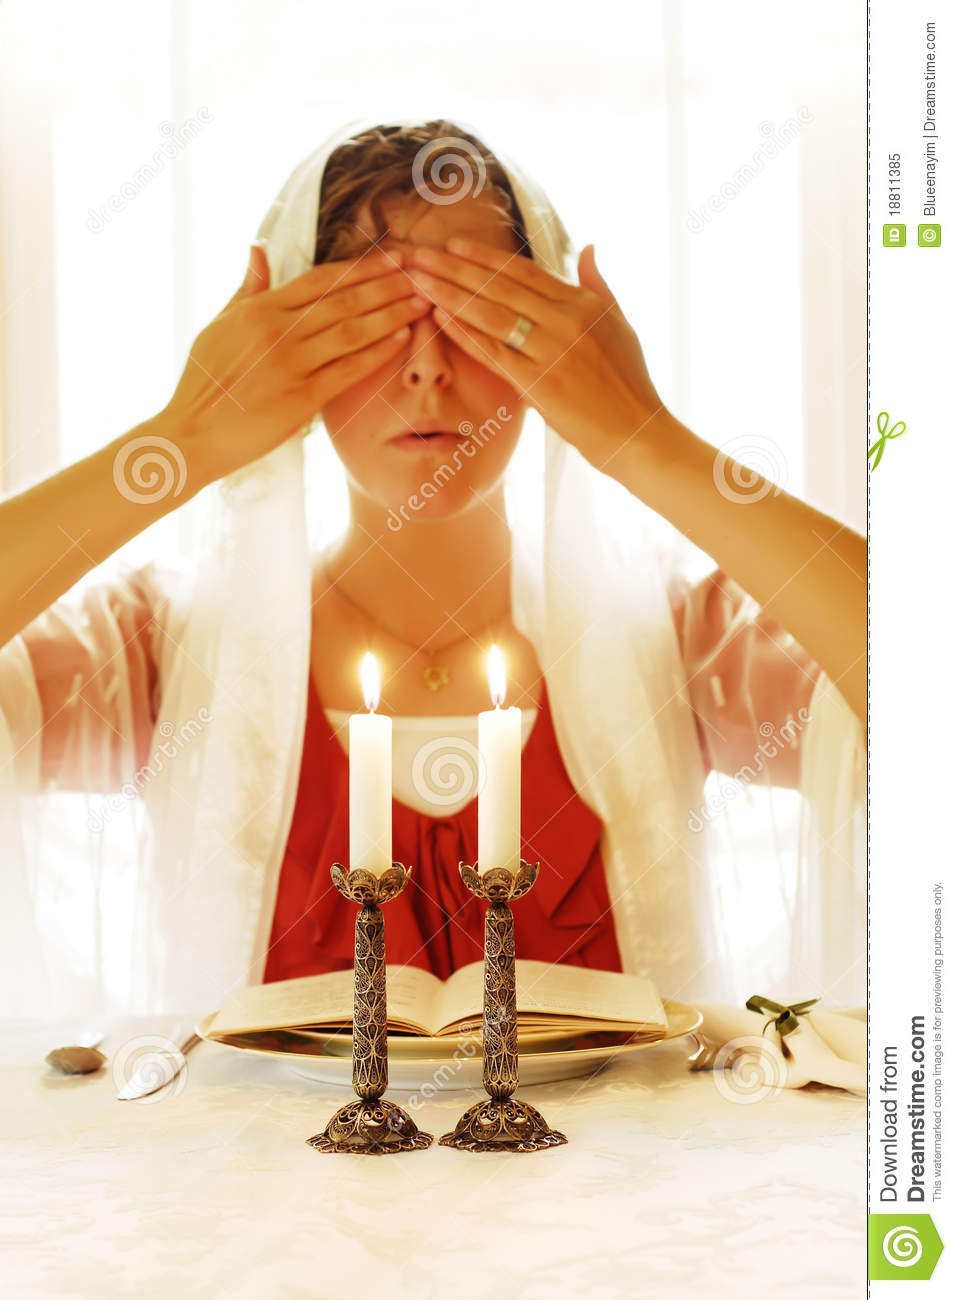 ... blessing for lighting the Shabbat candles. Focus is on candlesticks